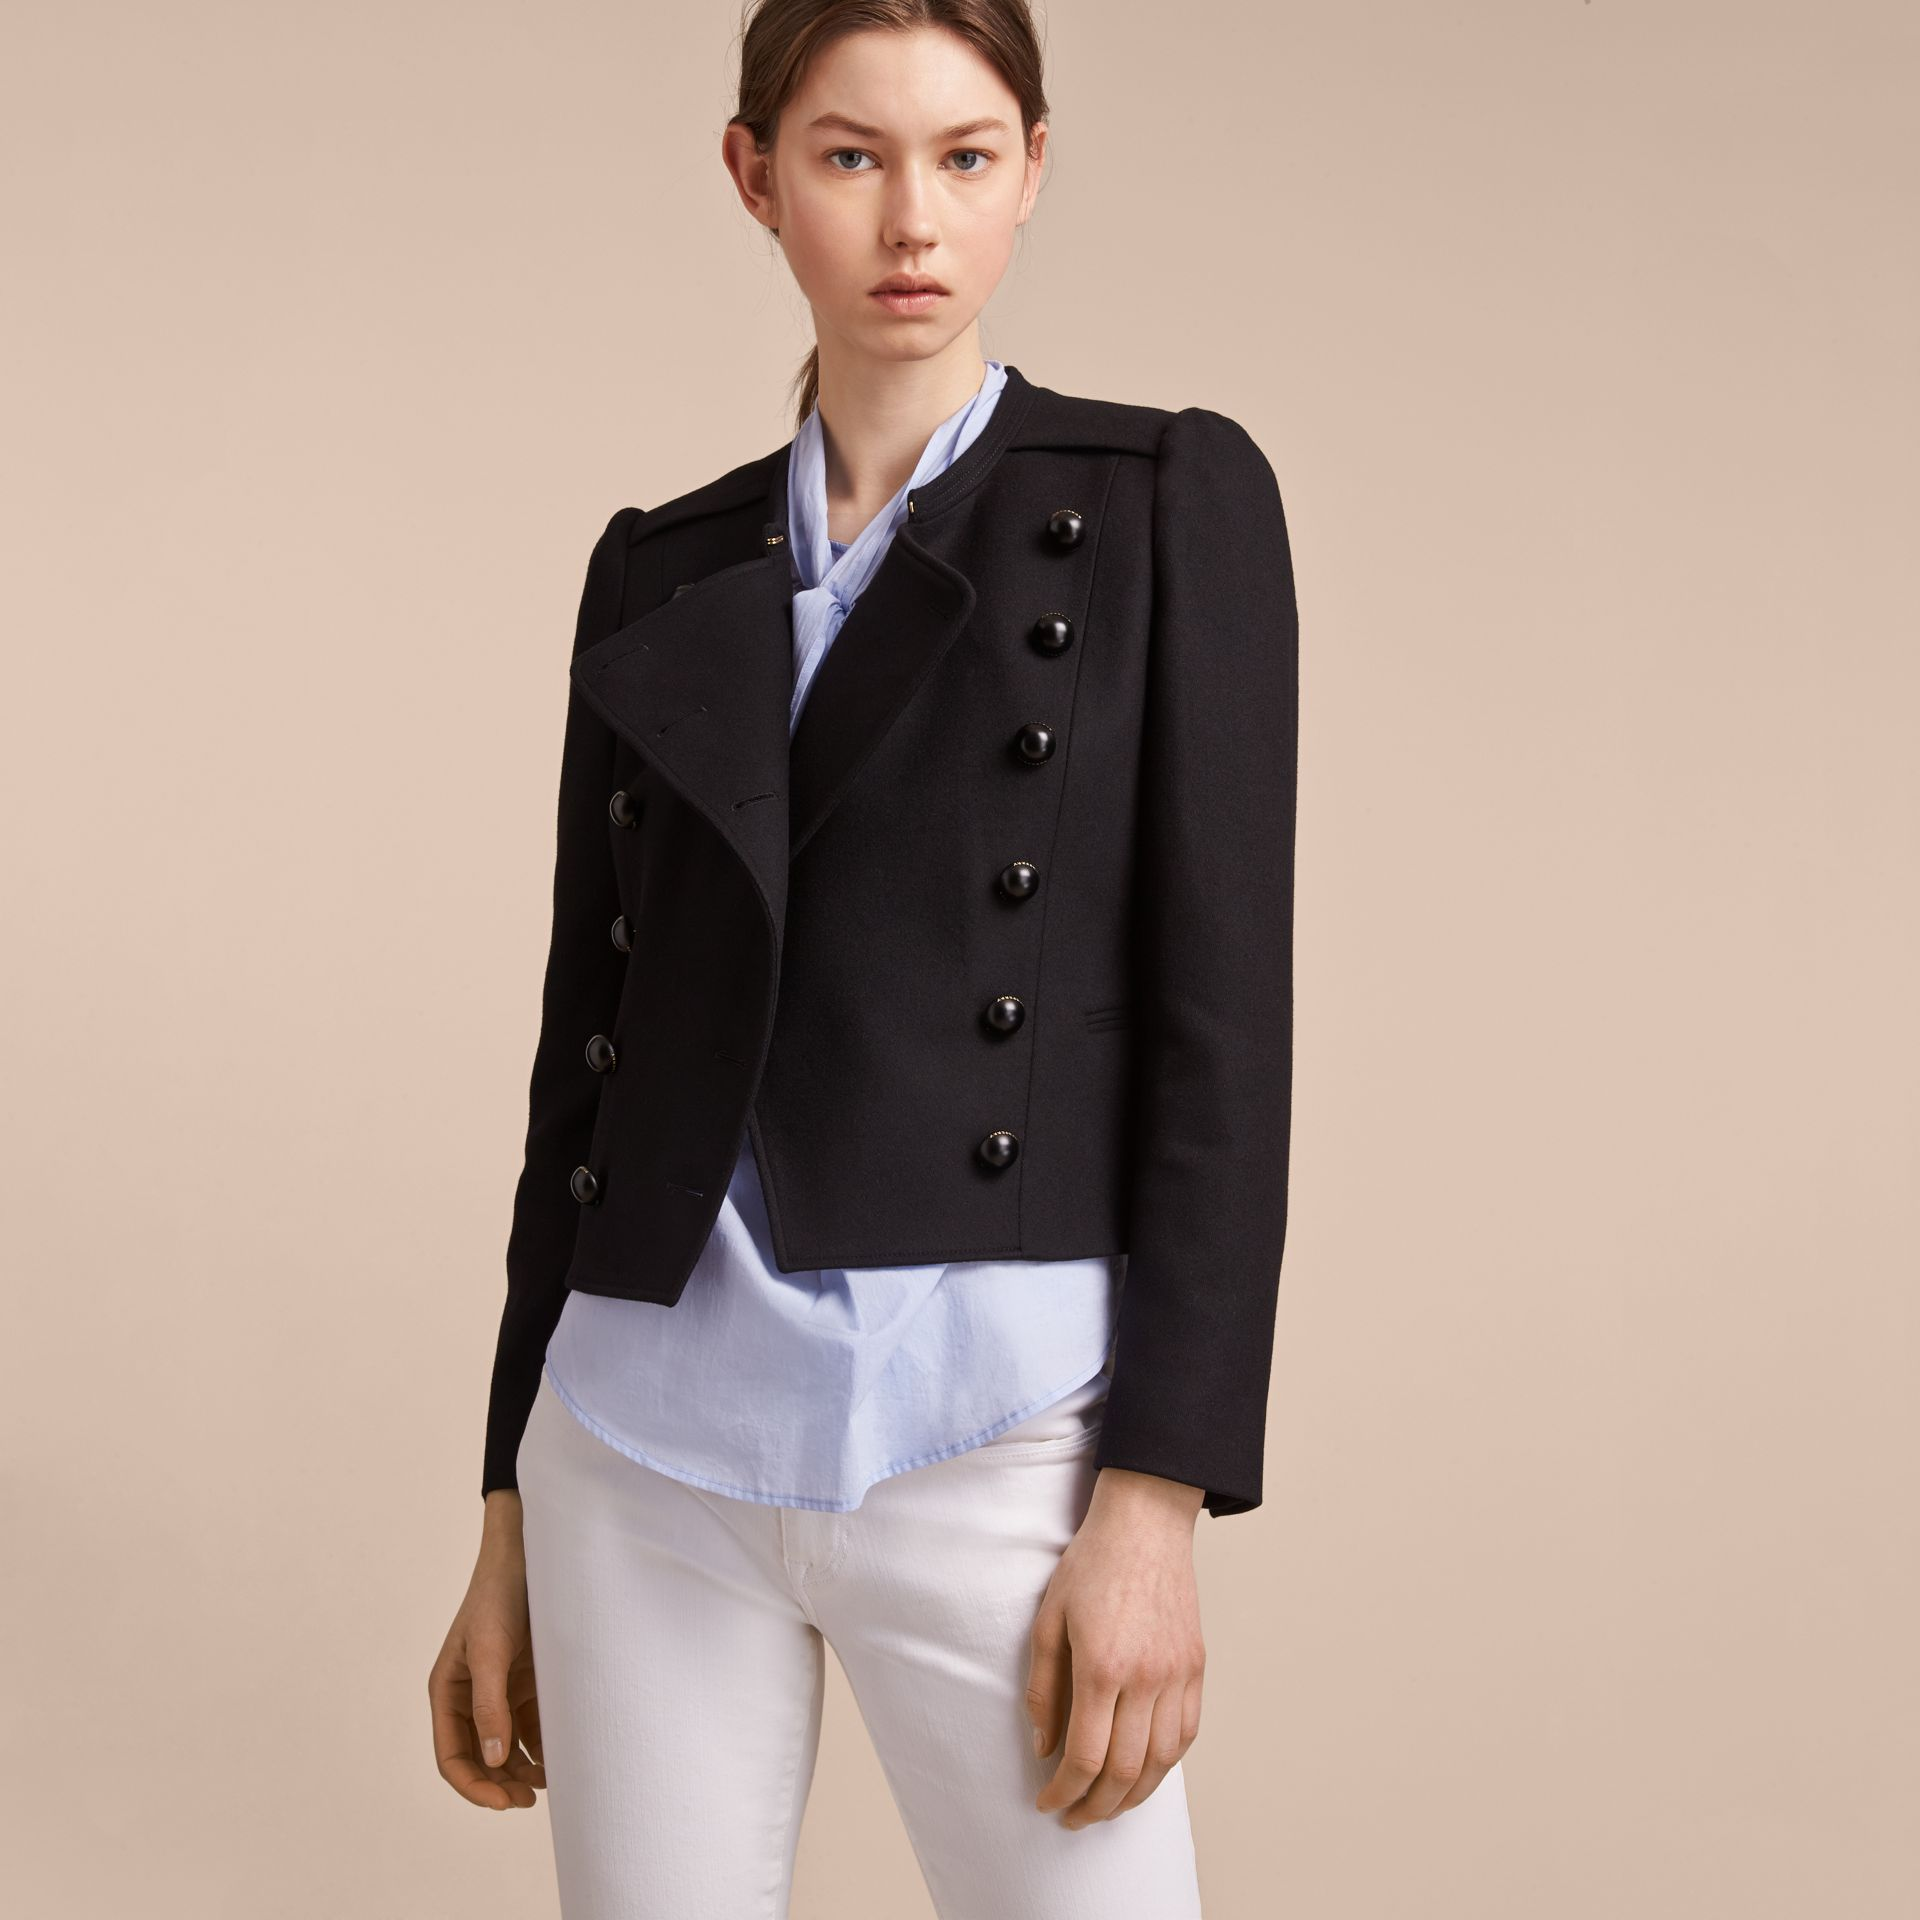 Wool Blend Double-breasted Jacket in Black - Women | Burberry - gallery image 6